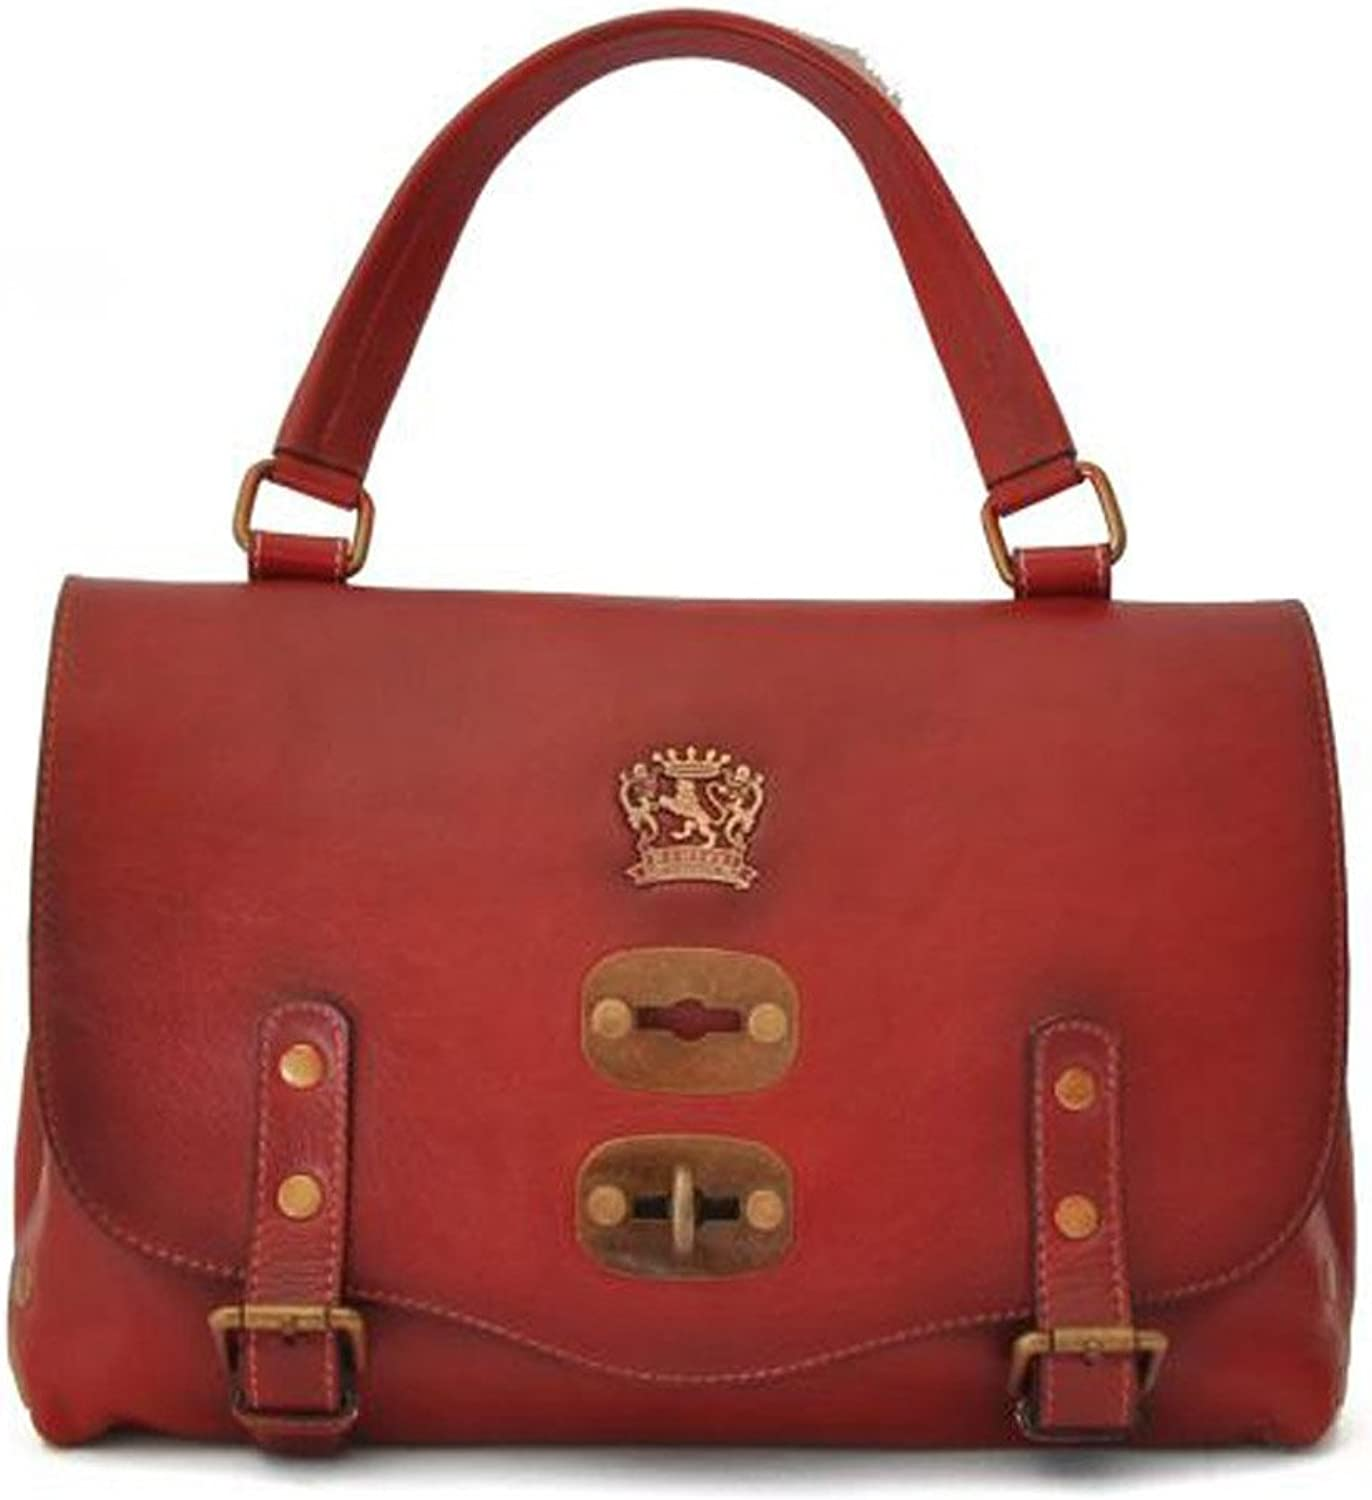 Pratesi Woman Bag Castell'Azzara Small in cow leather  Bruce Cherry